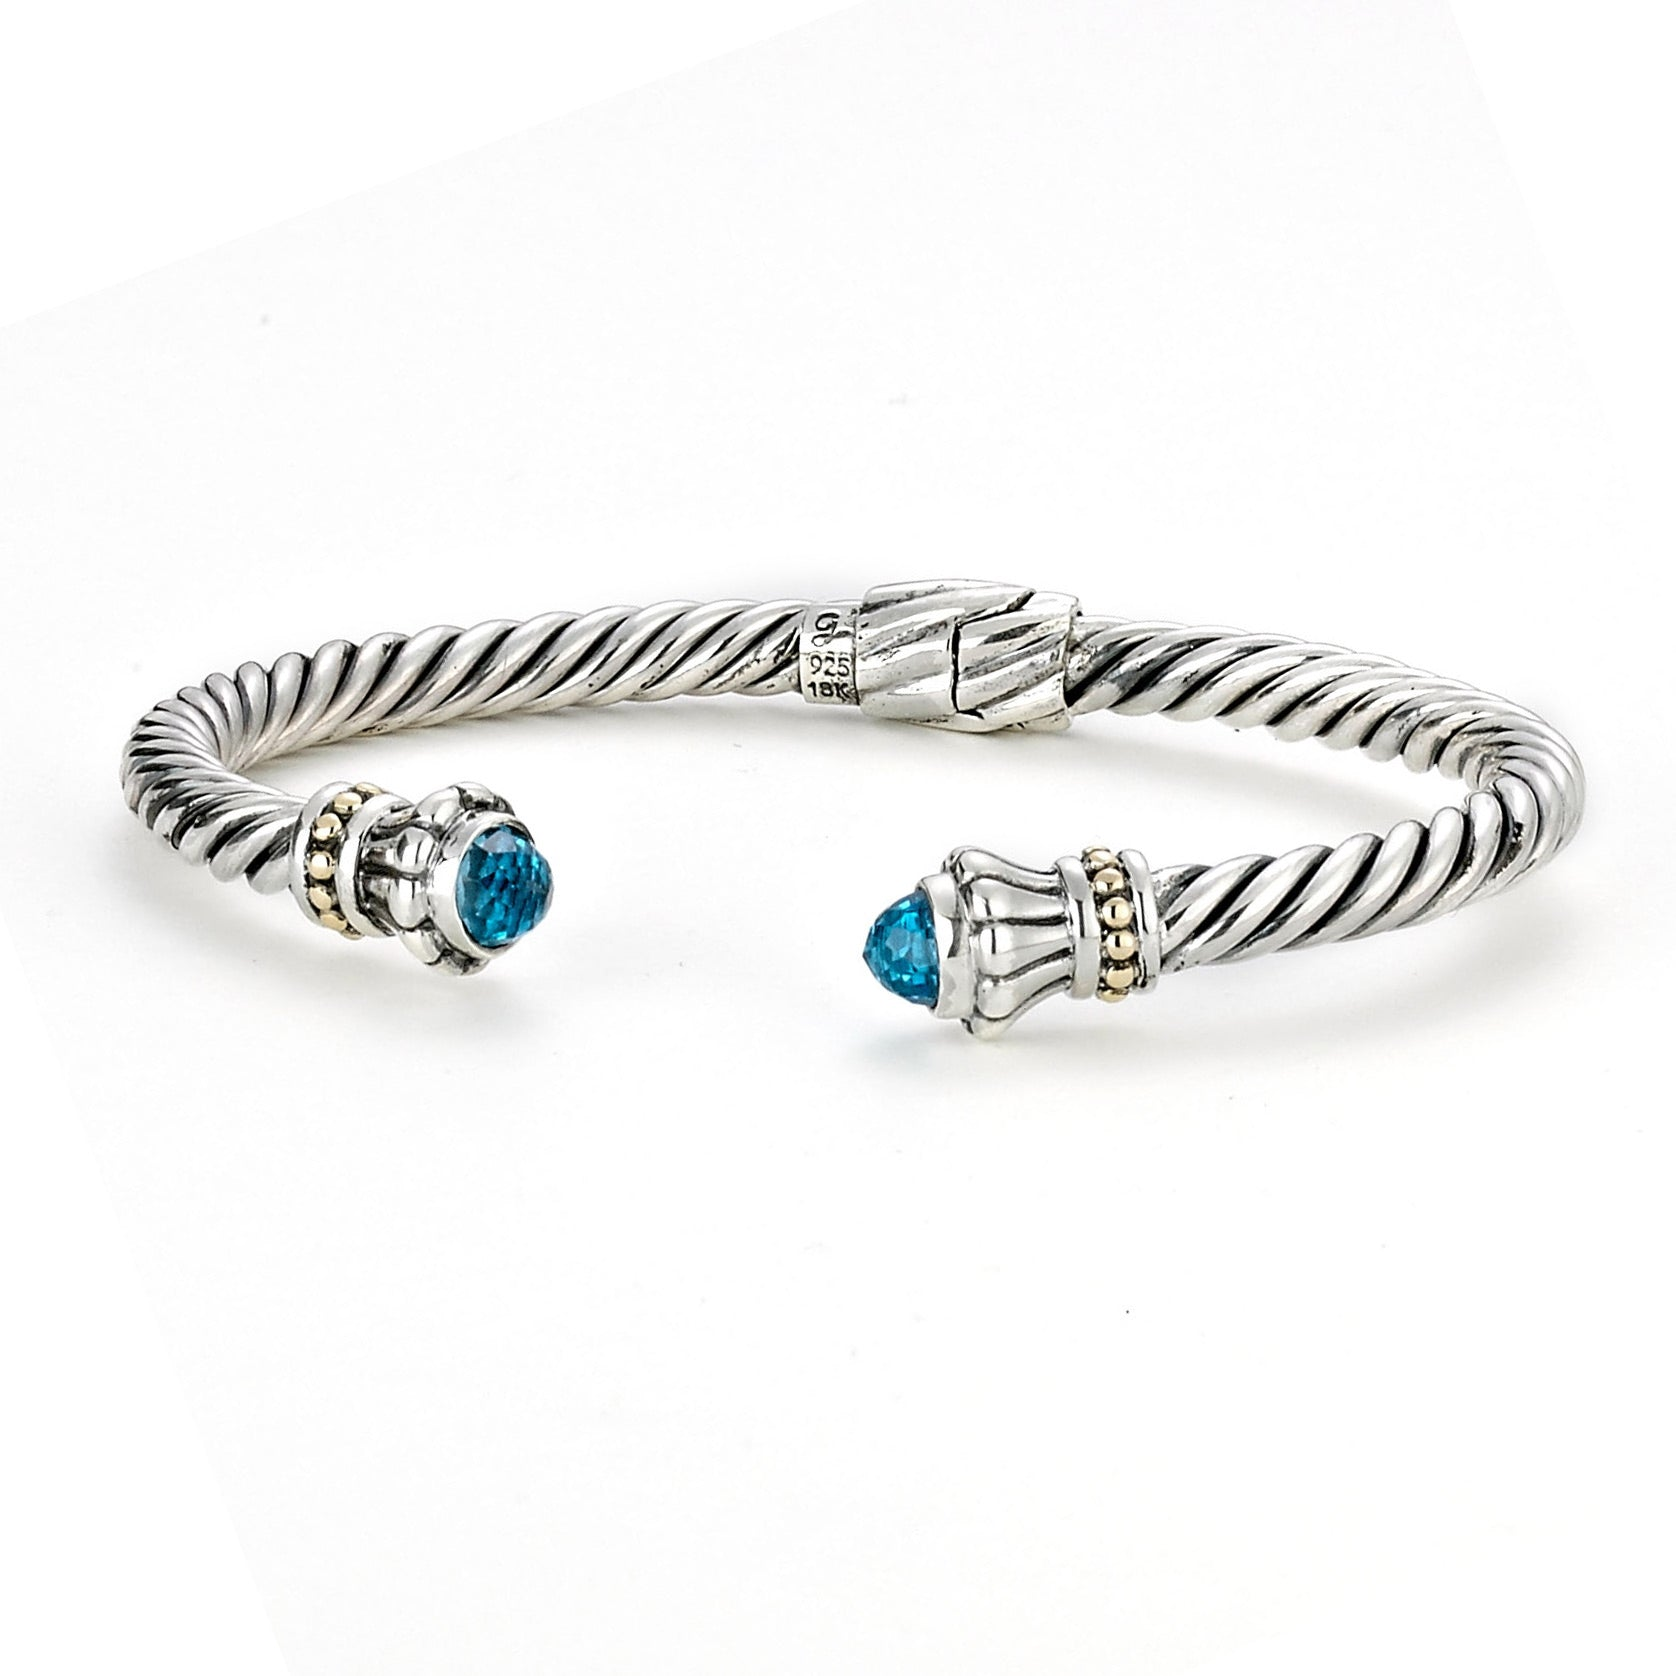 Rope Design Cuff with Blue Topaz Ends, Sterling Silver